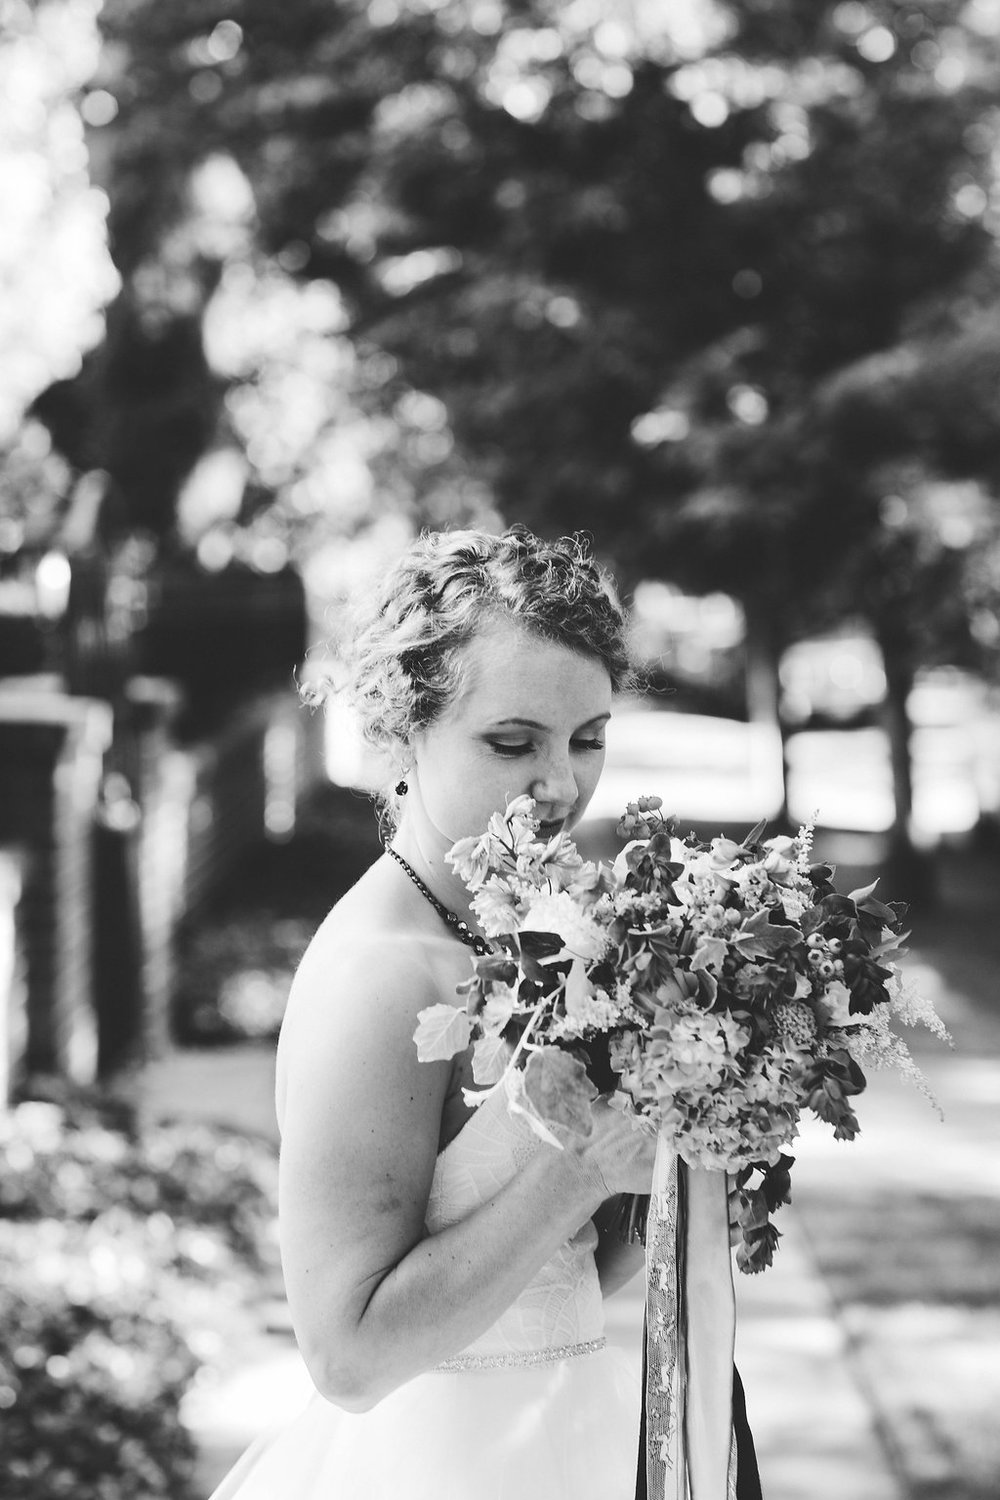 Nissa+Jesse_Wedding_Seattle_SoleRepairShop_6252015_87.jpg